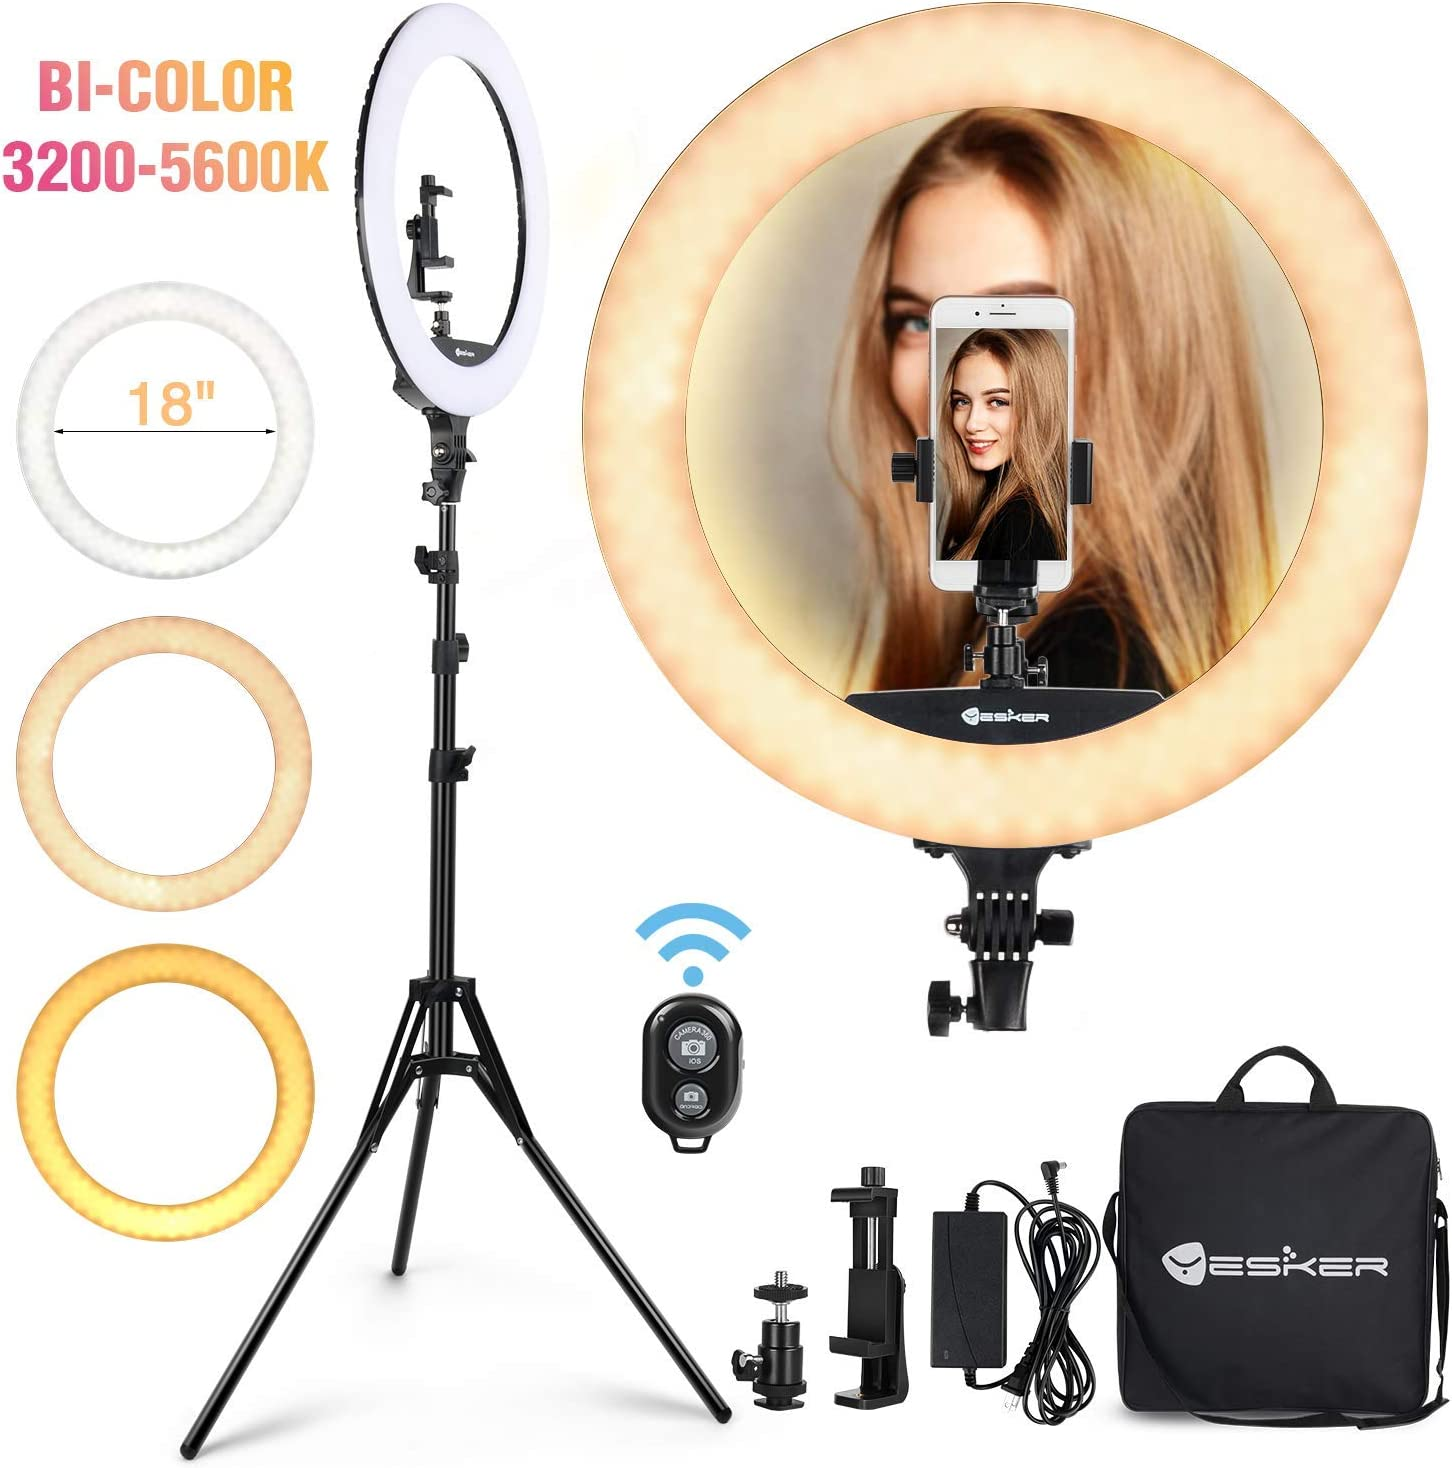 Fill light 18 inch LED Photography Cold and Warm Two-Color Ring Adjustable Light LED Lighting kit Beauty Light Wireless Remote Control with Stand